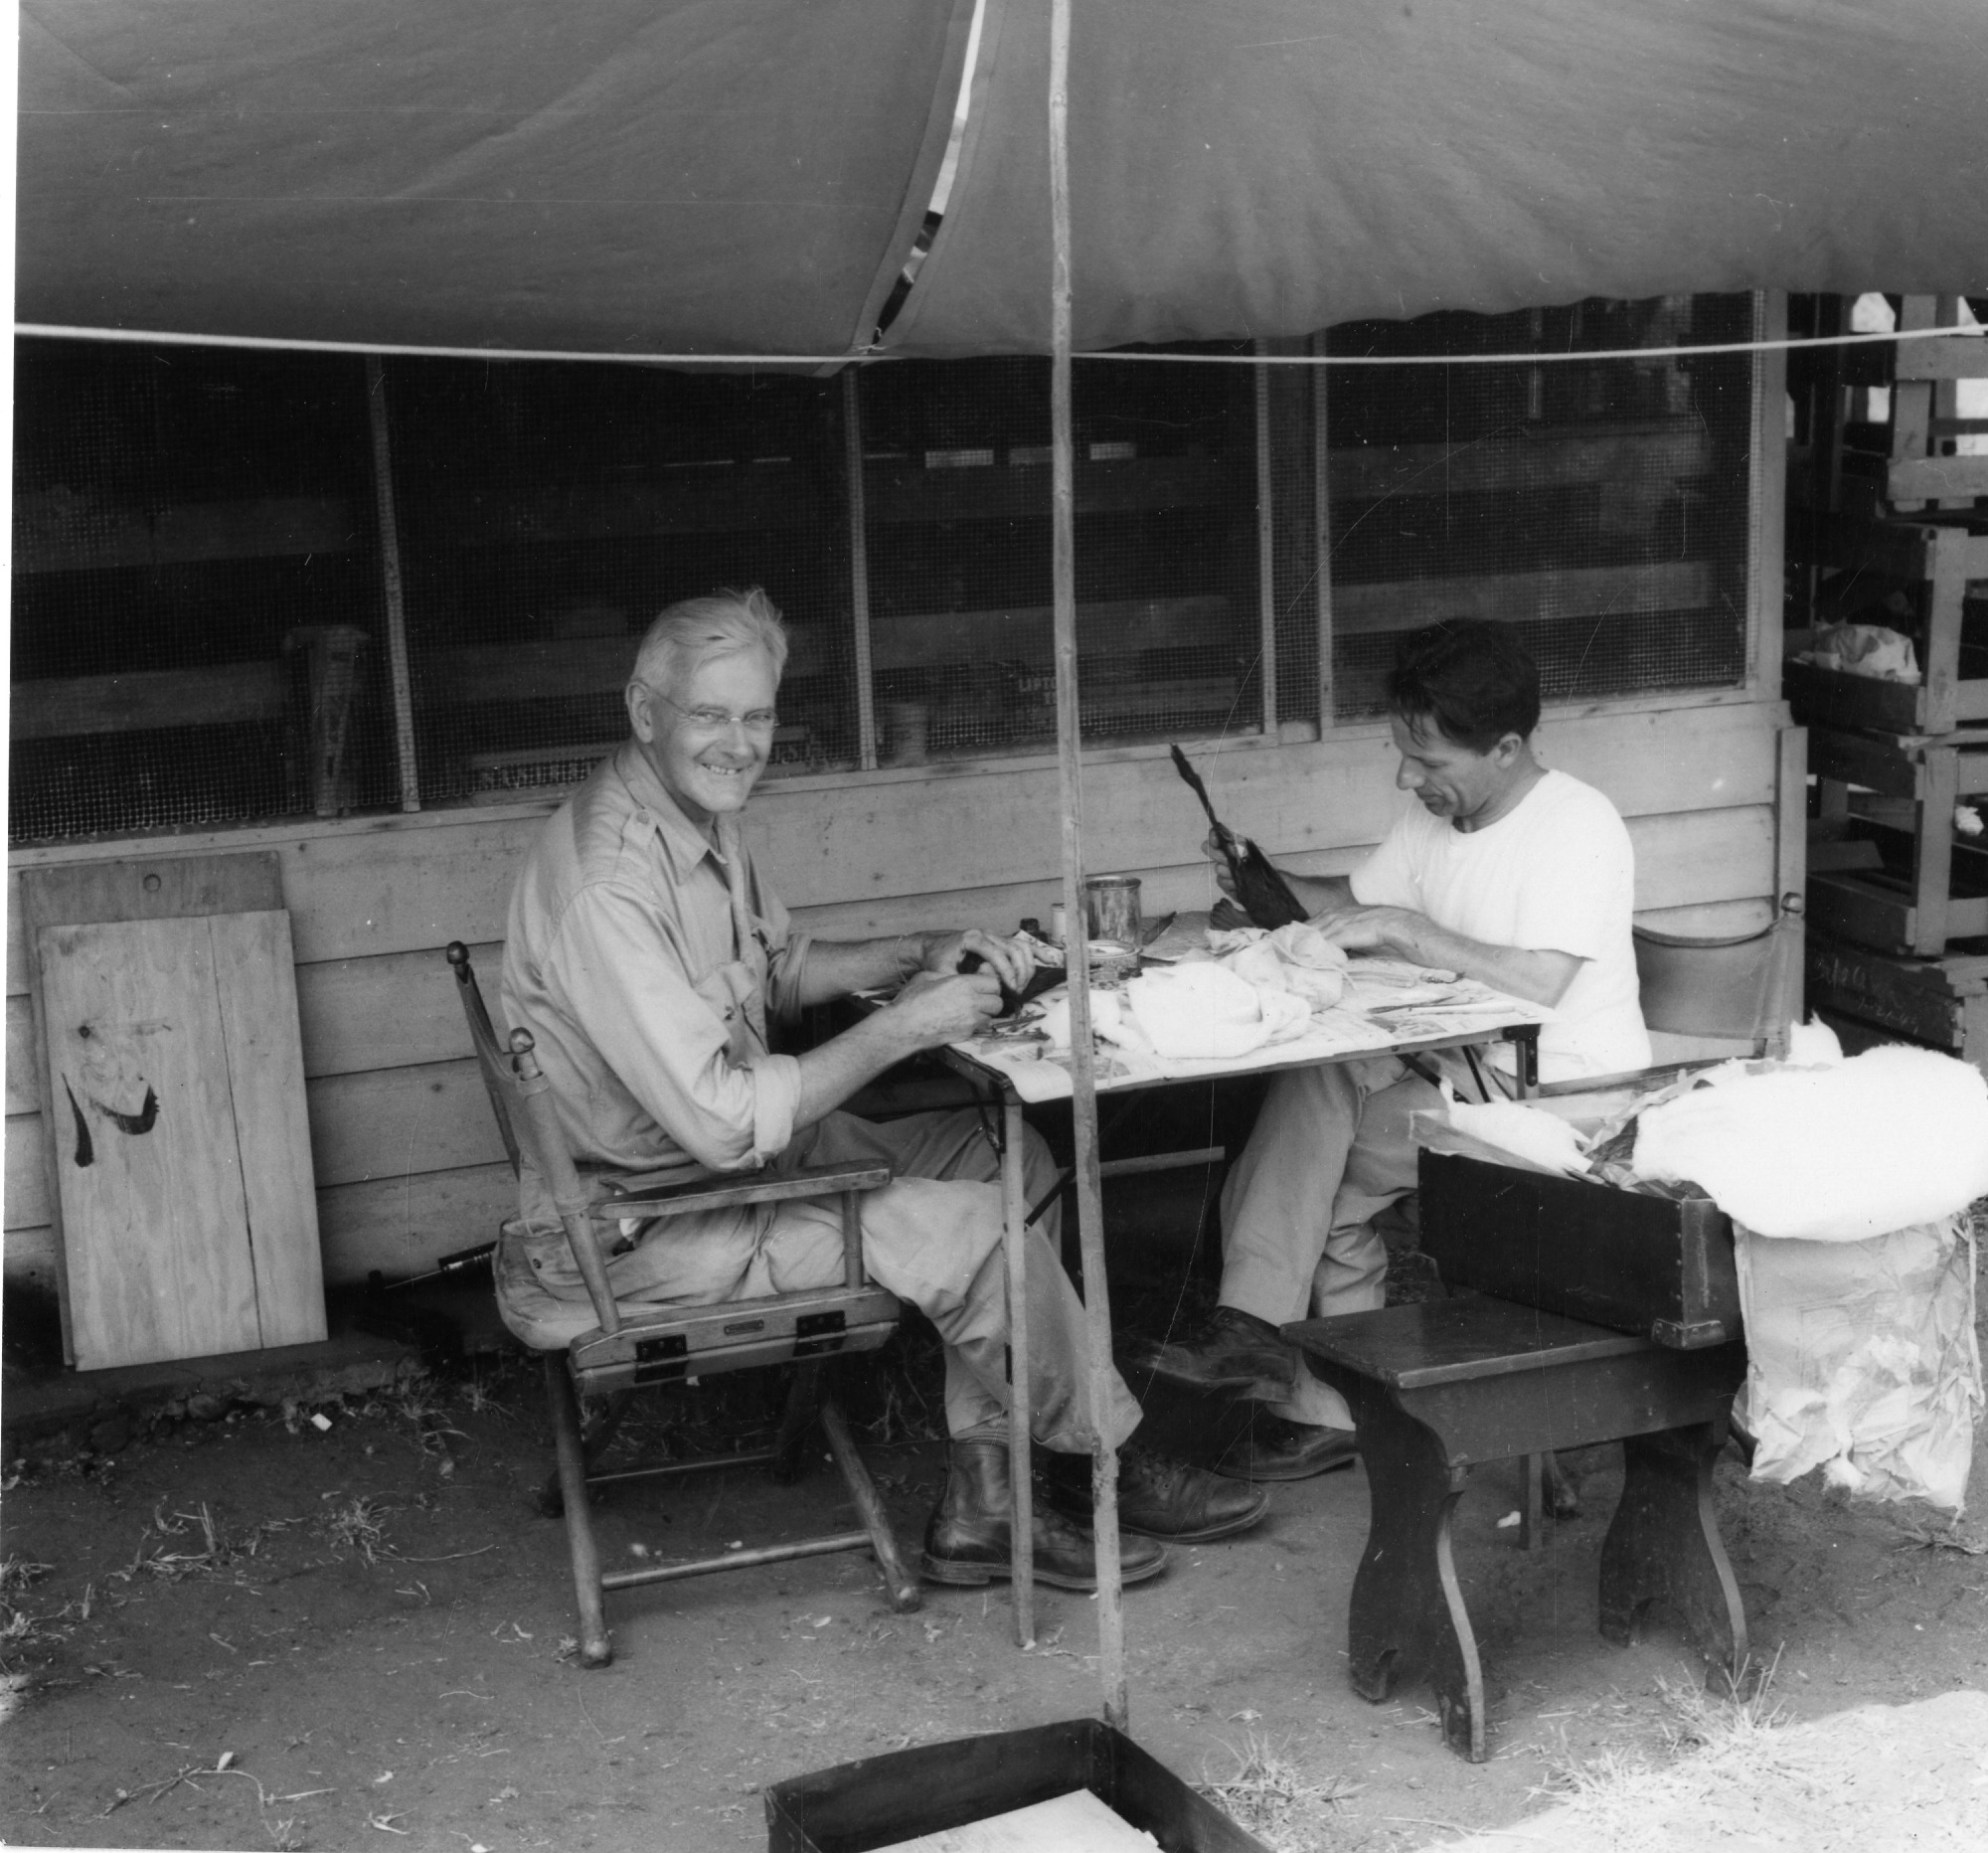 Wetmore and Perrygo near Chico, Panama, 1949